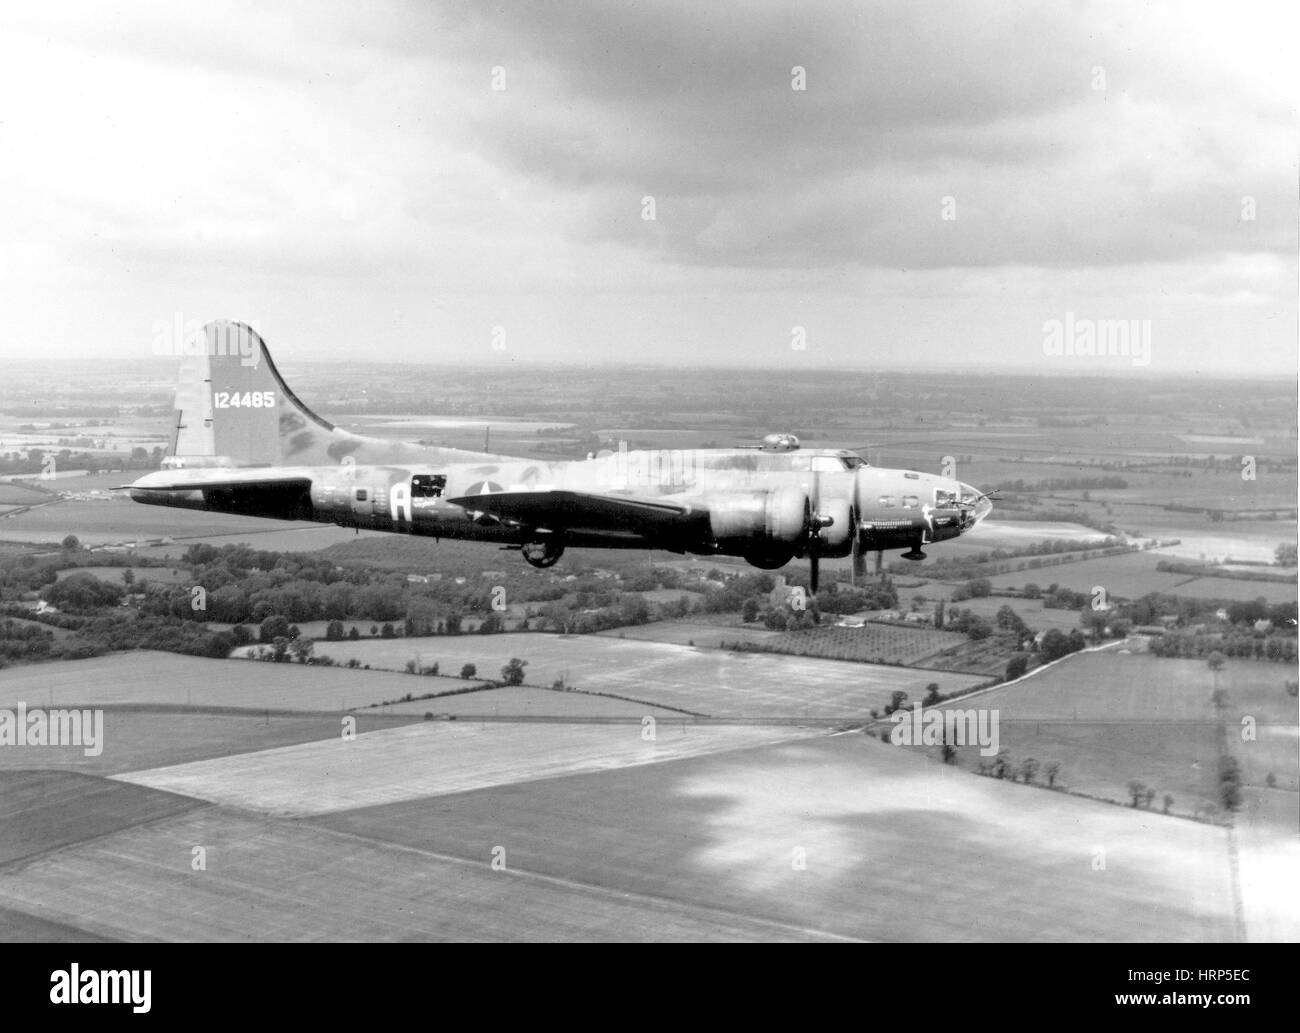 WWII, Boeing B-17 Flying Fortress, 1943 Stock Photo